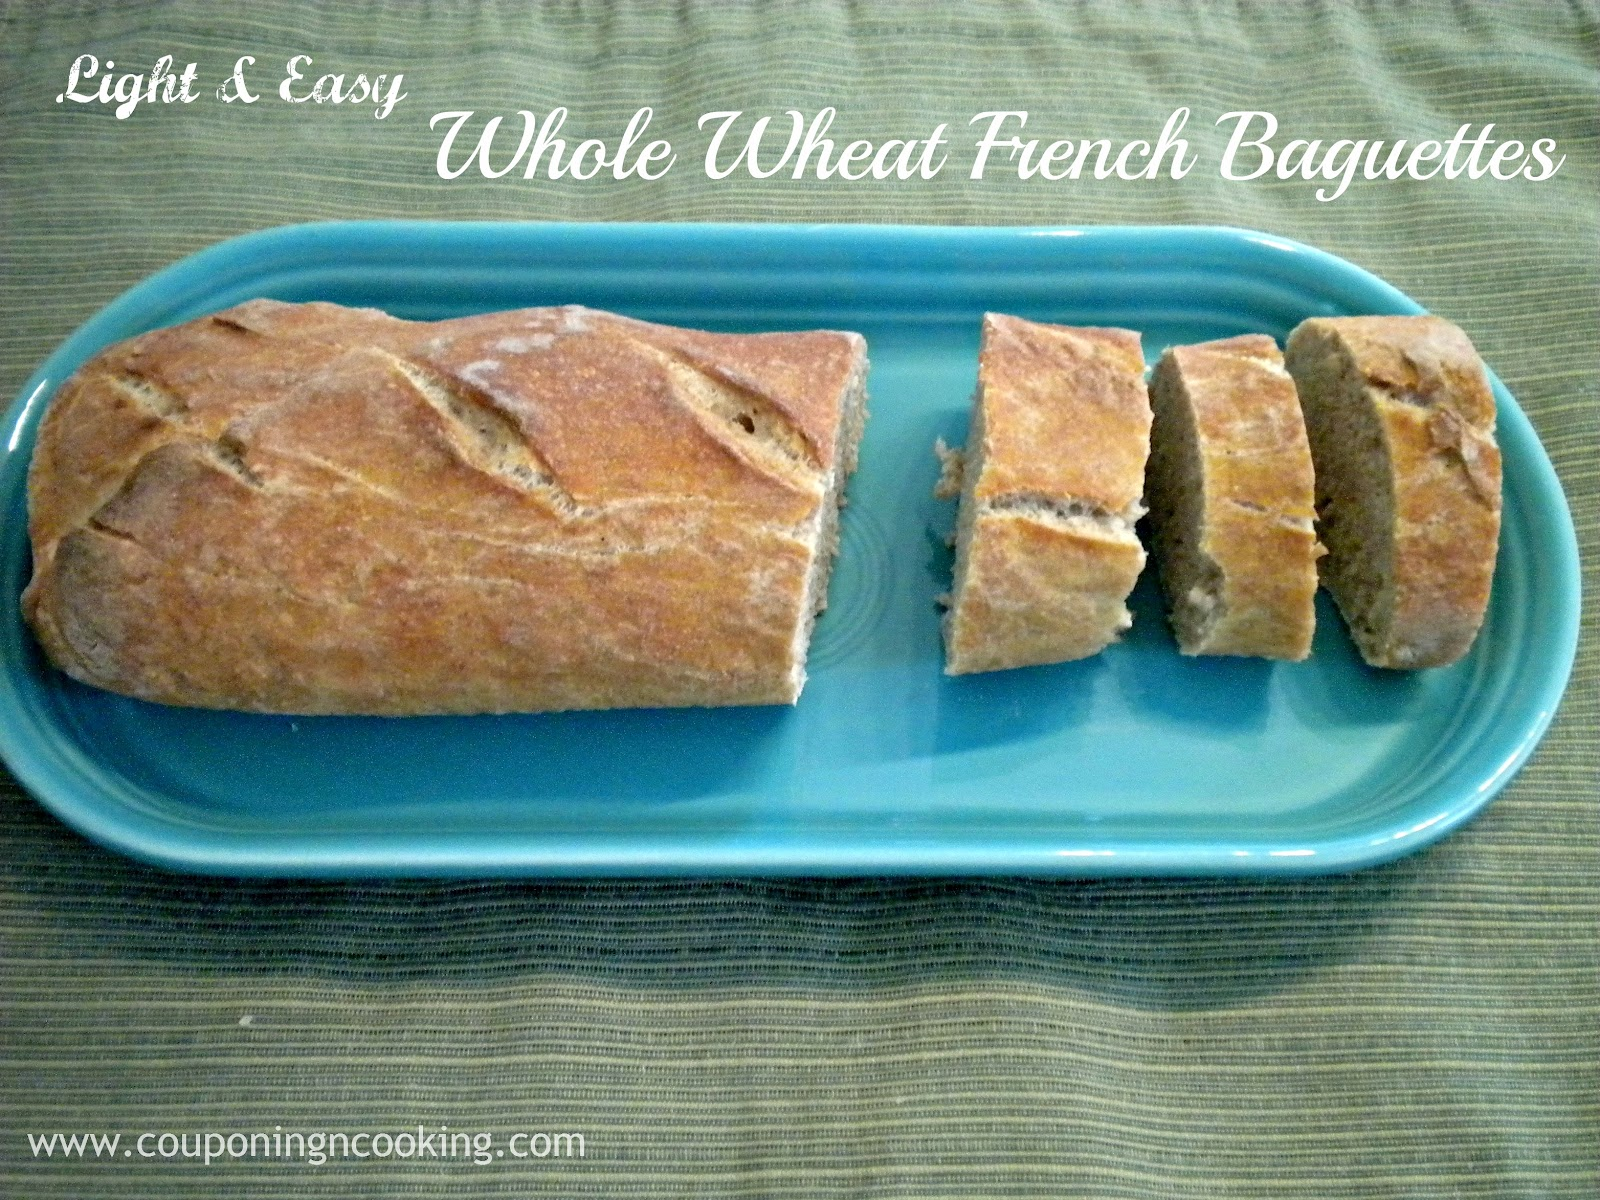 Tobins' Tastes: Homemade Bread Challenge: Whole Wheat Baguettes